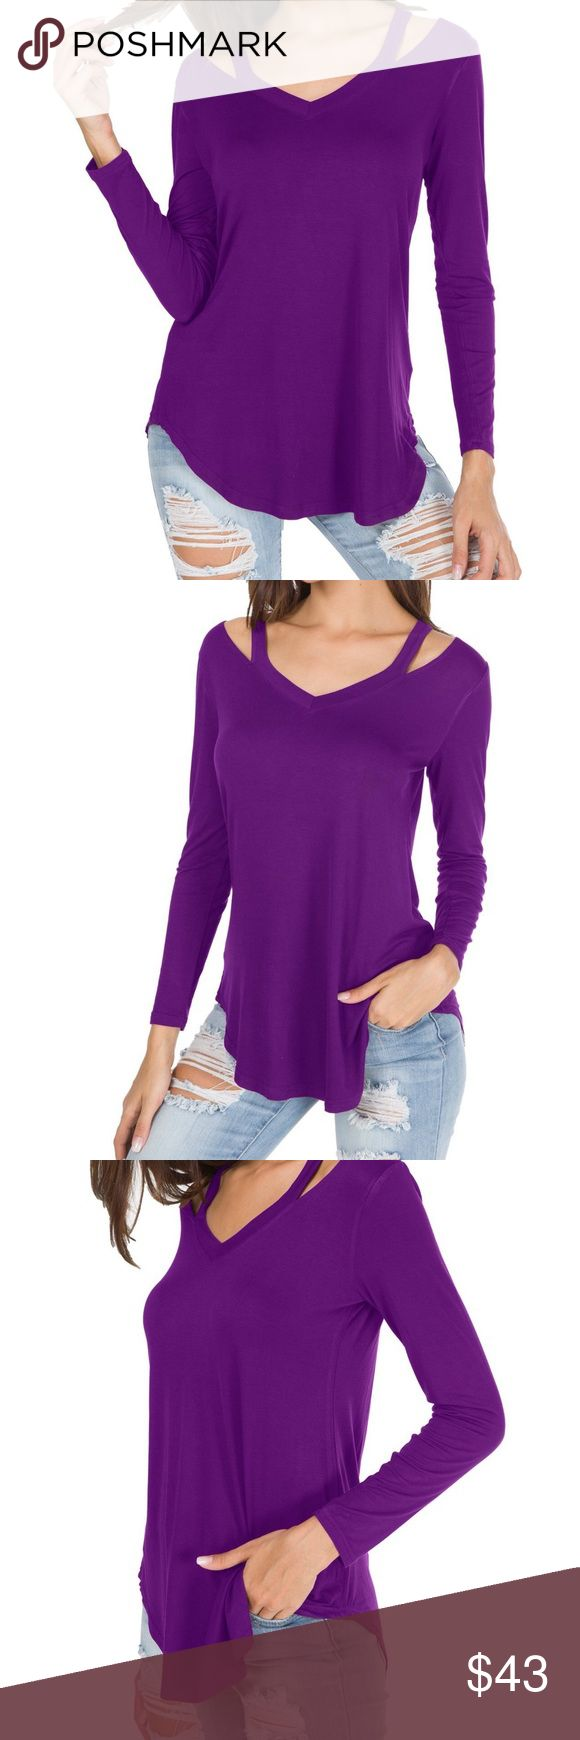 Long Sleeve Hollow Out V Neck Slim Fit Blouse Top Color: Purple Material: 95% RAYON/5% SPANDEX.Good Elasticity, Soft and Comfortable Selling Point:Sexy Hollow out V Neck Blouse T Shirts,Slim Casual Tees Tops Style Fit: Boots/Jeans/Leggings Suitable Occasion: Casual/Work/Home US Size:Large-US(12-14);Medium-US(8-10);Small-US(4-6);X-Large-US(16) EllaB Tops Blouses